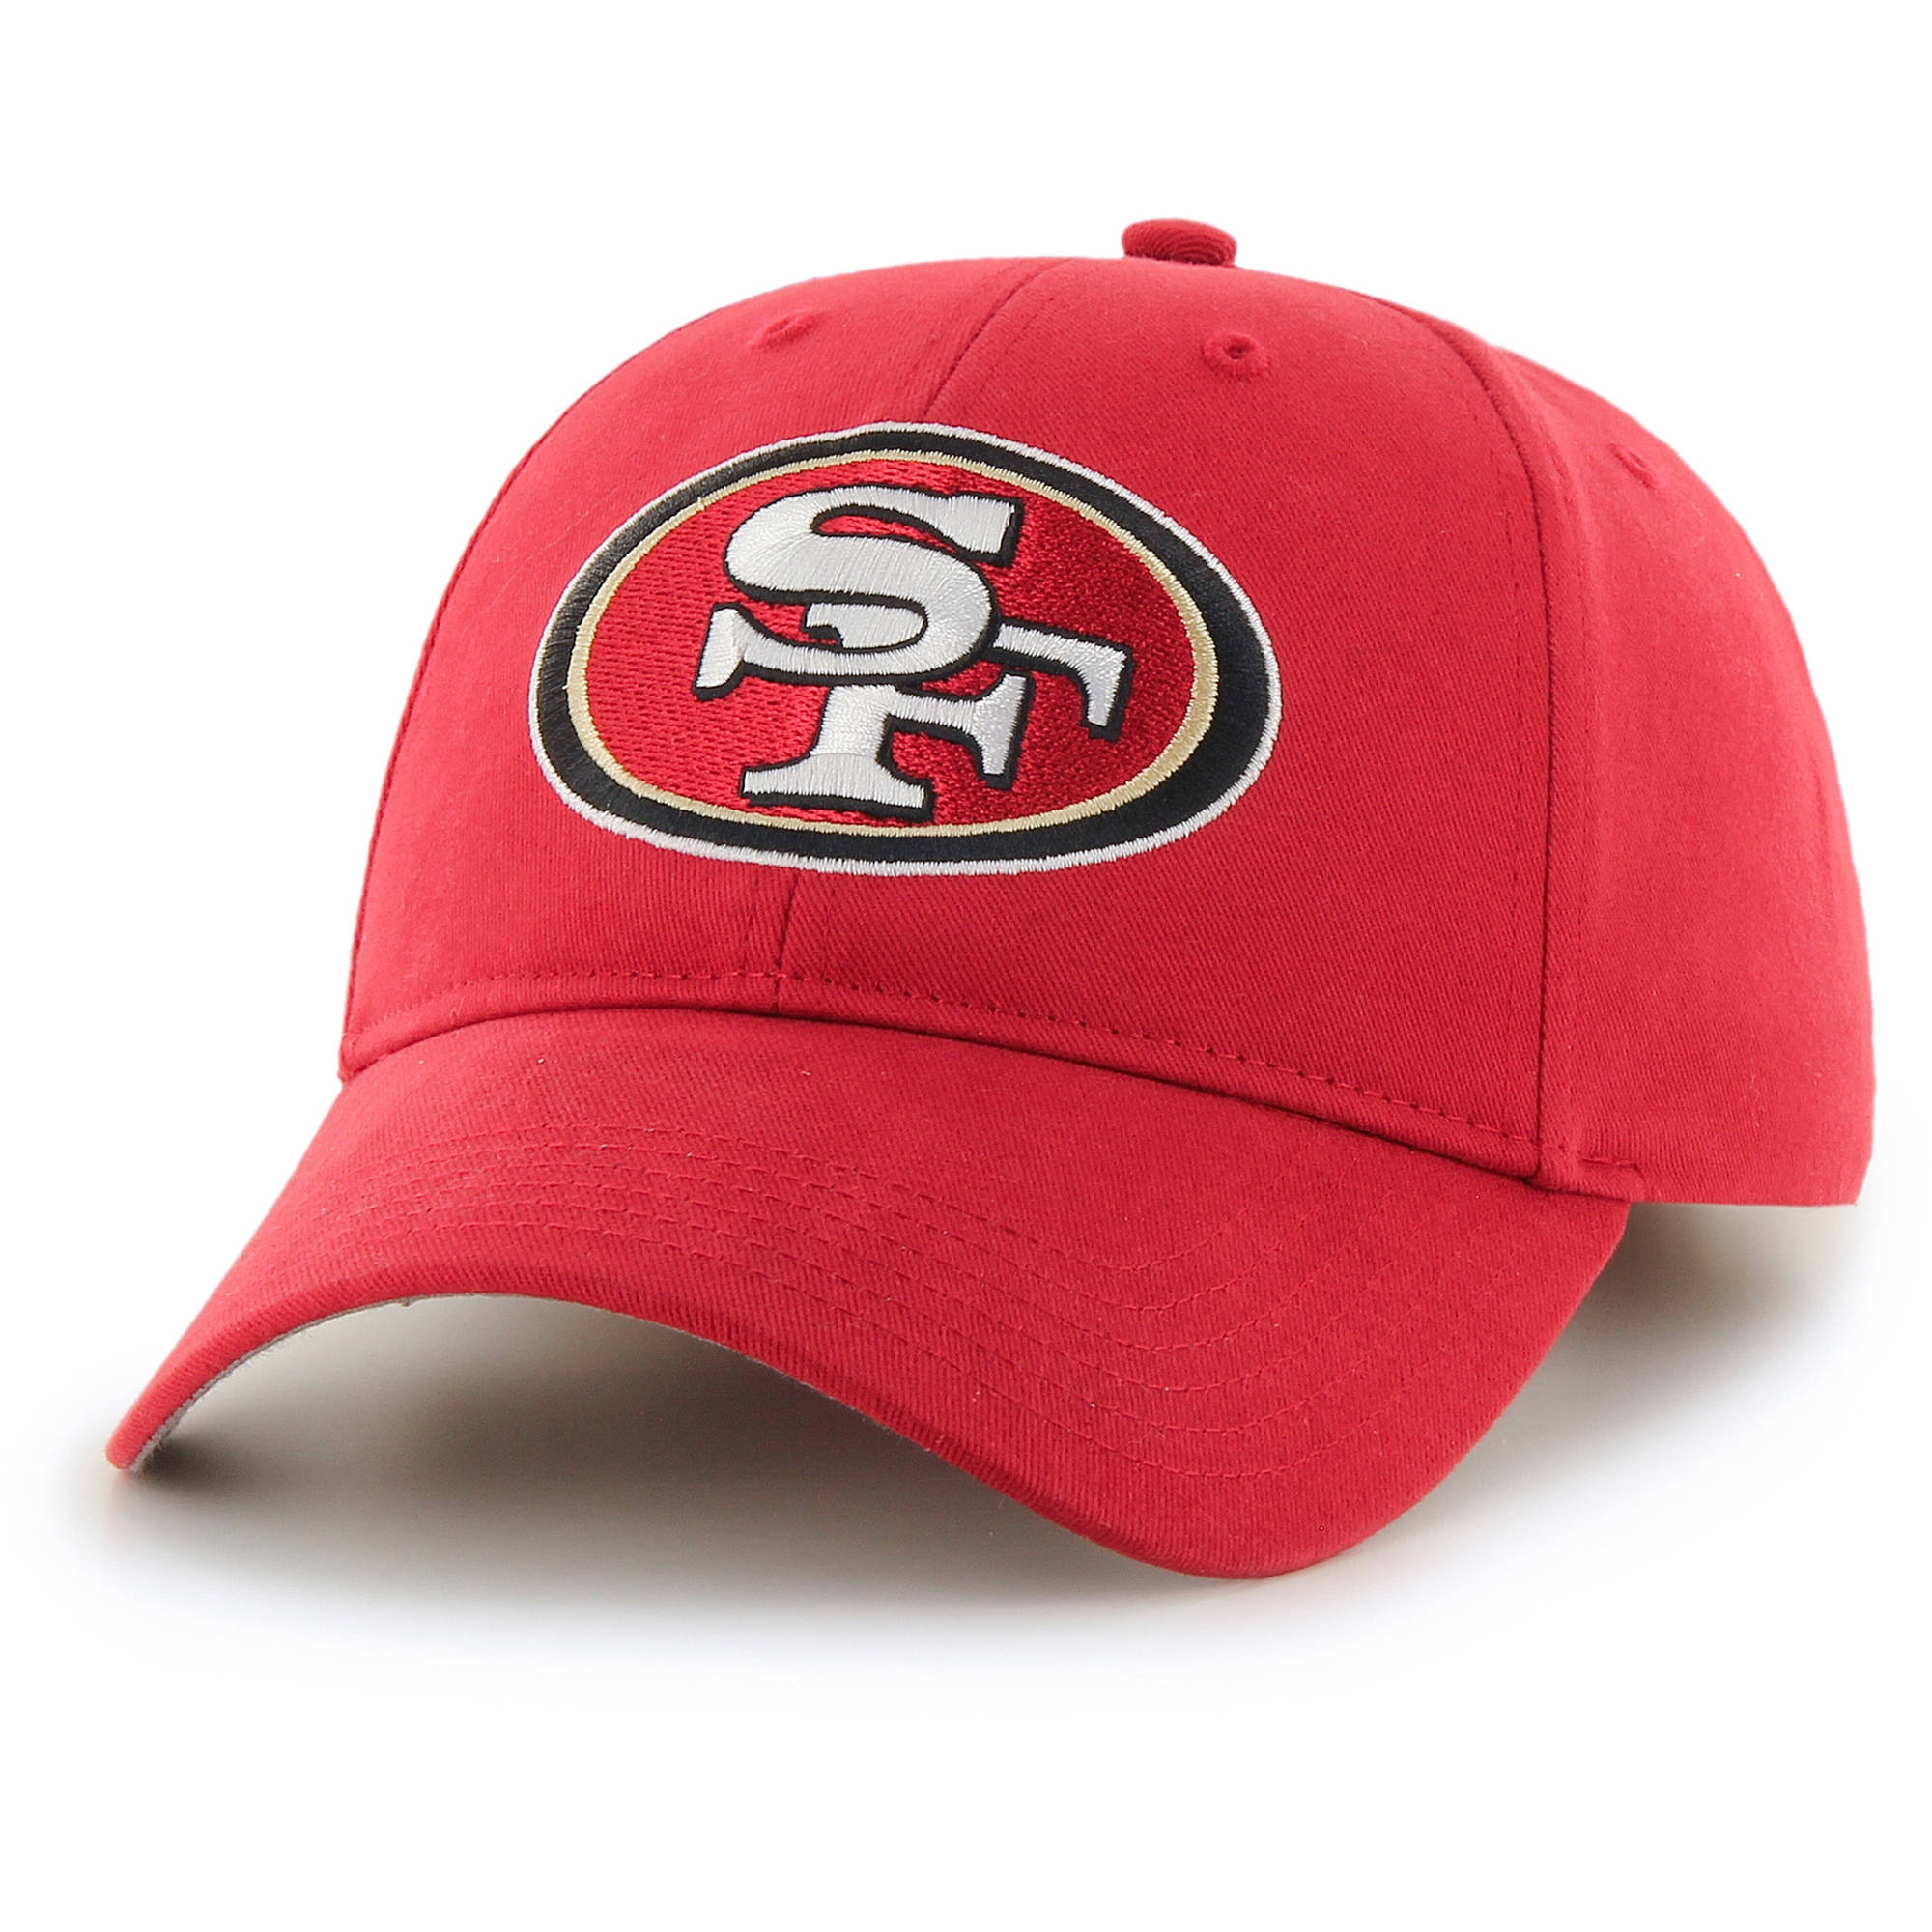 NFL San Francisco 49ers Basic Cap / Hat by Fan Favorite